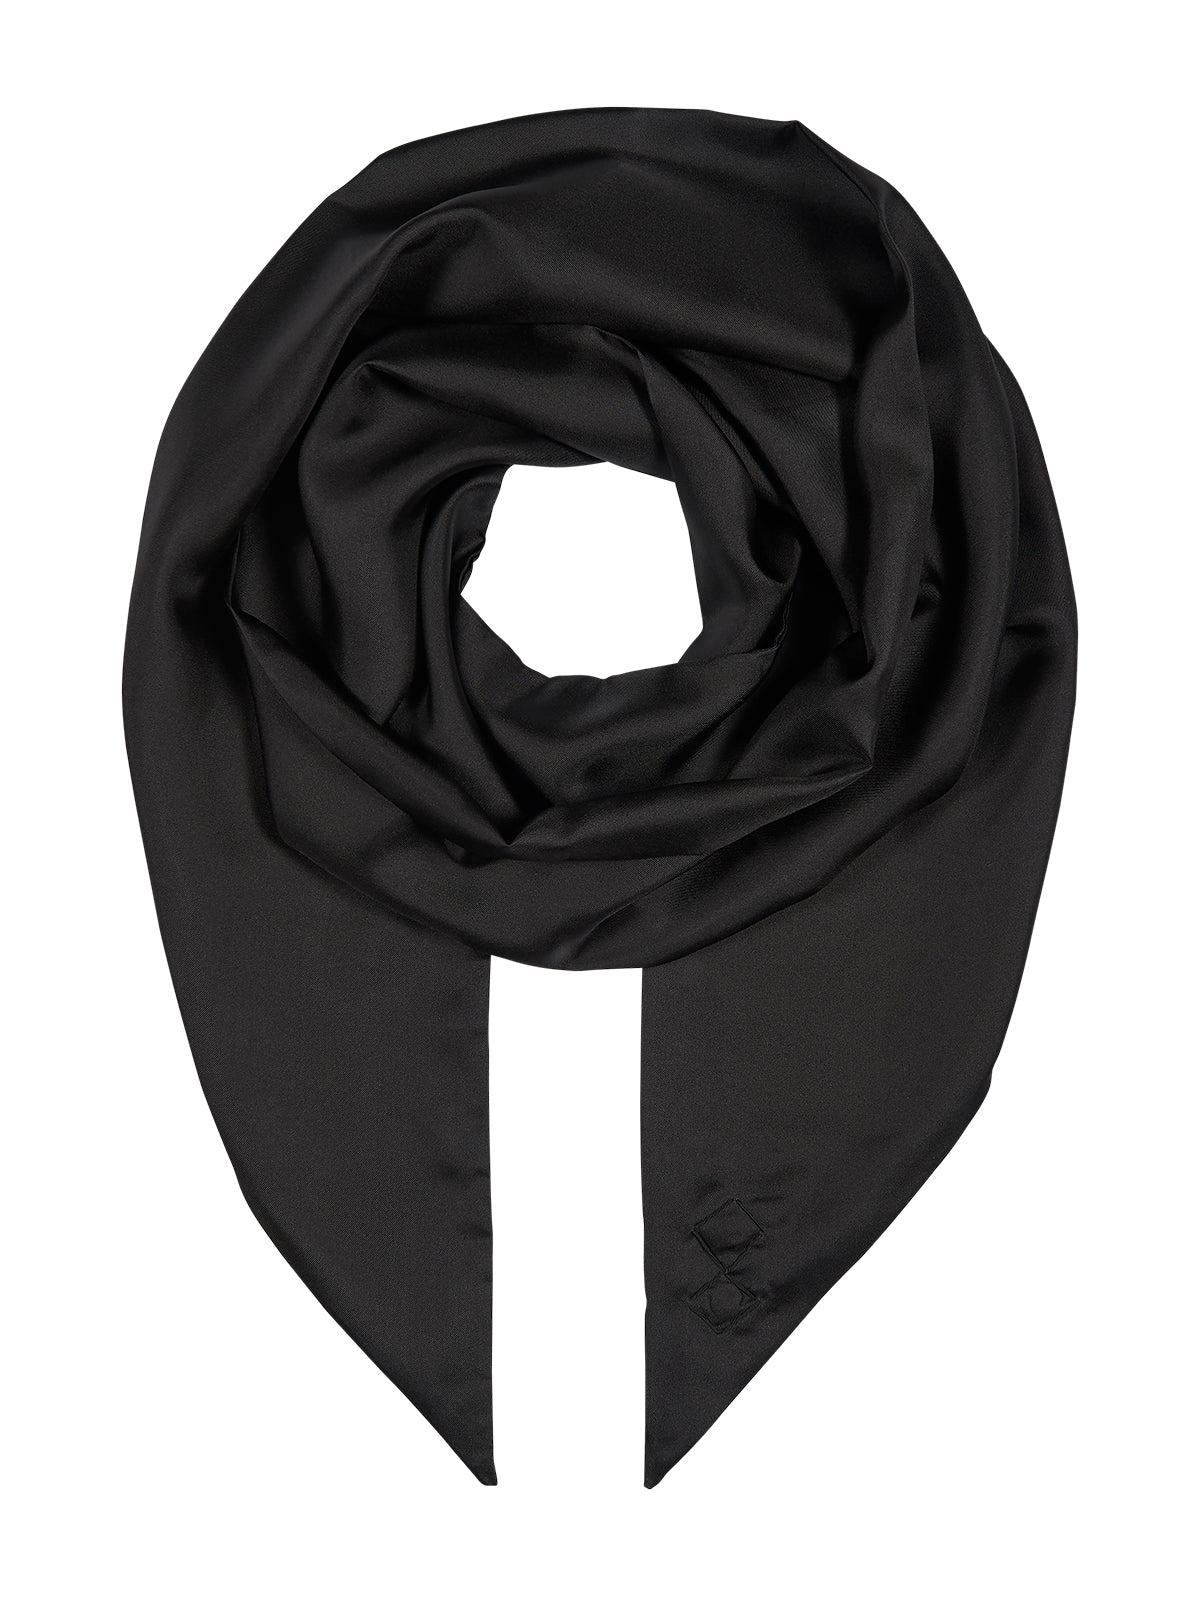 Silk Tubolar scarf in black